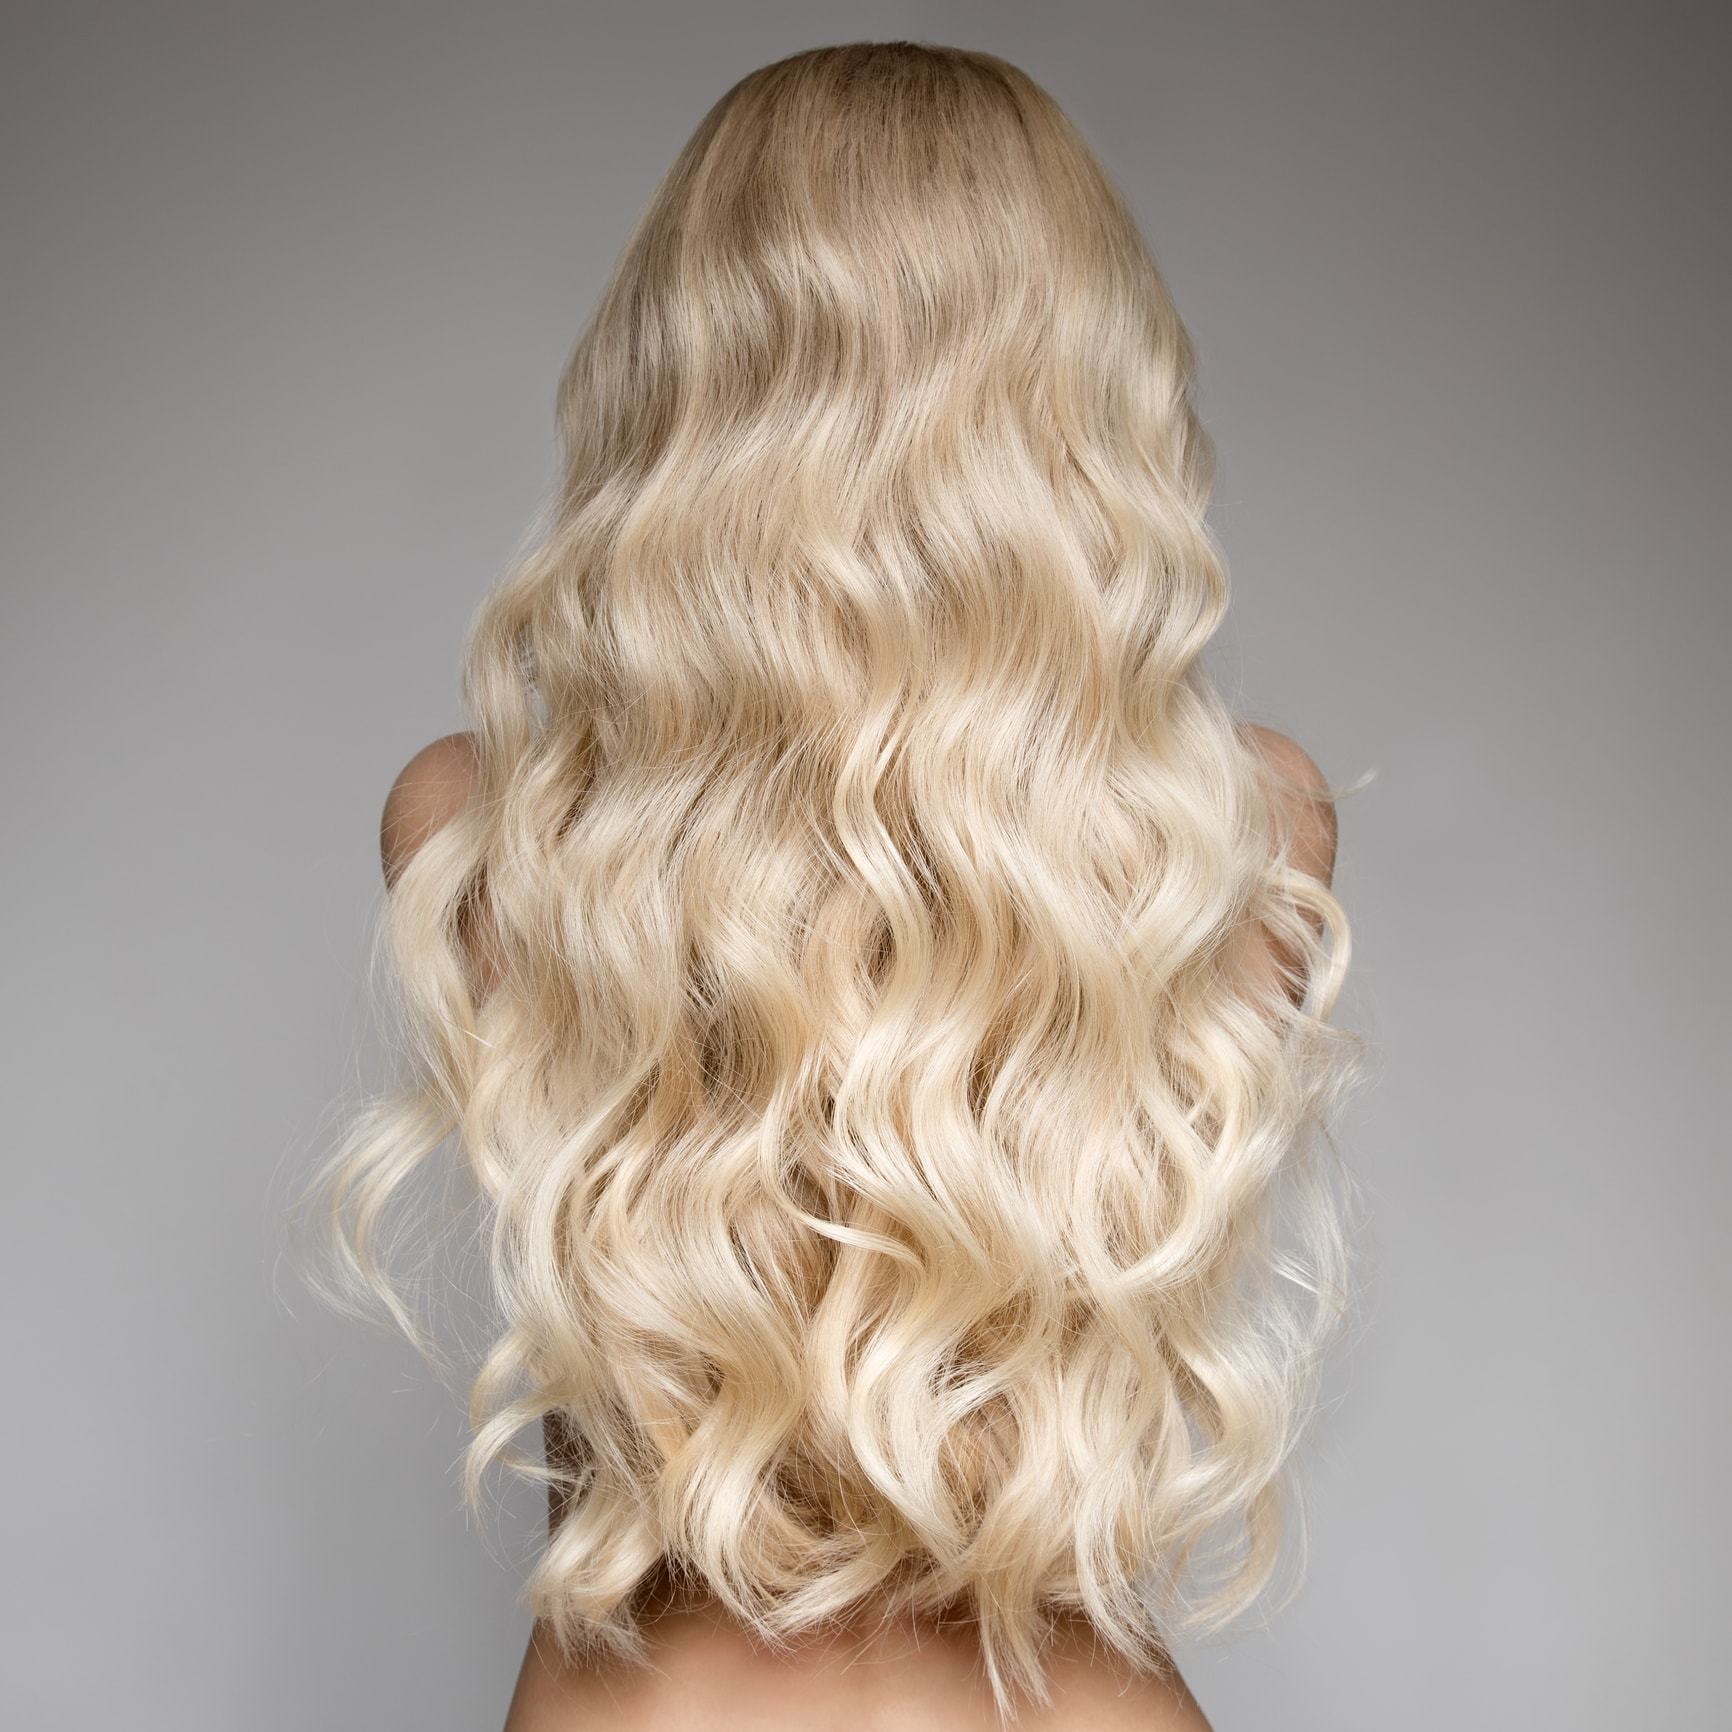 curly perm long brushed through blonde curls